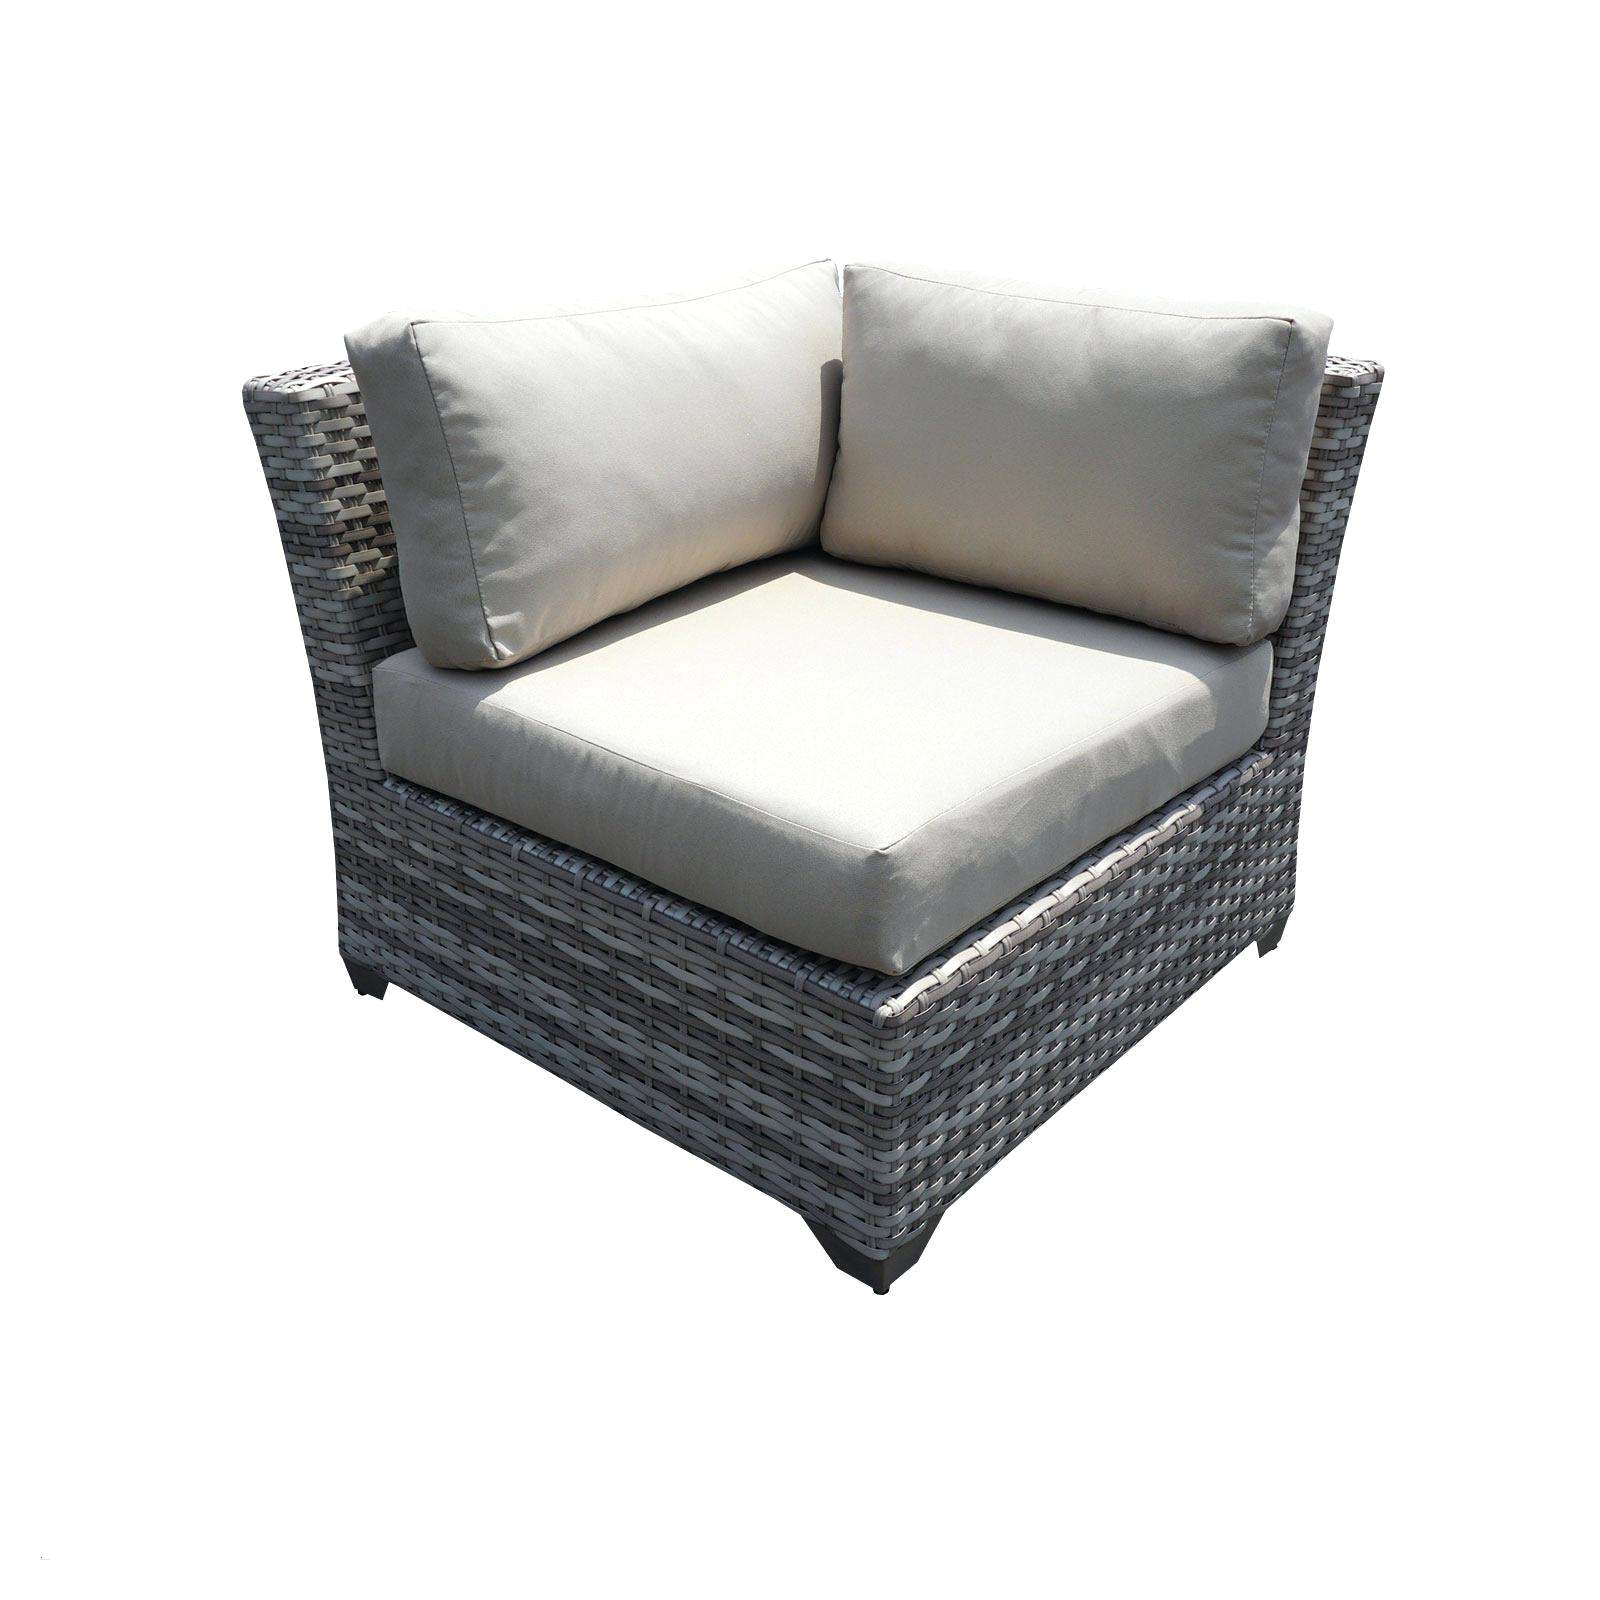 Outdoor Patio Chairs at Walmart Walmart Cushions for Outdoor Furniture Lovely Walmart Outdoor